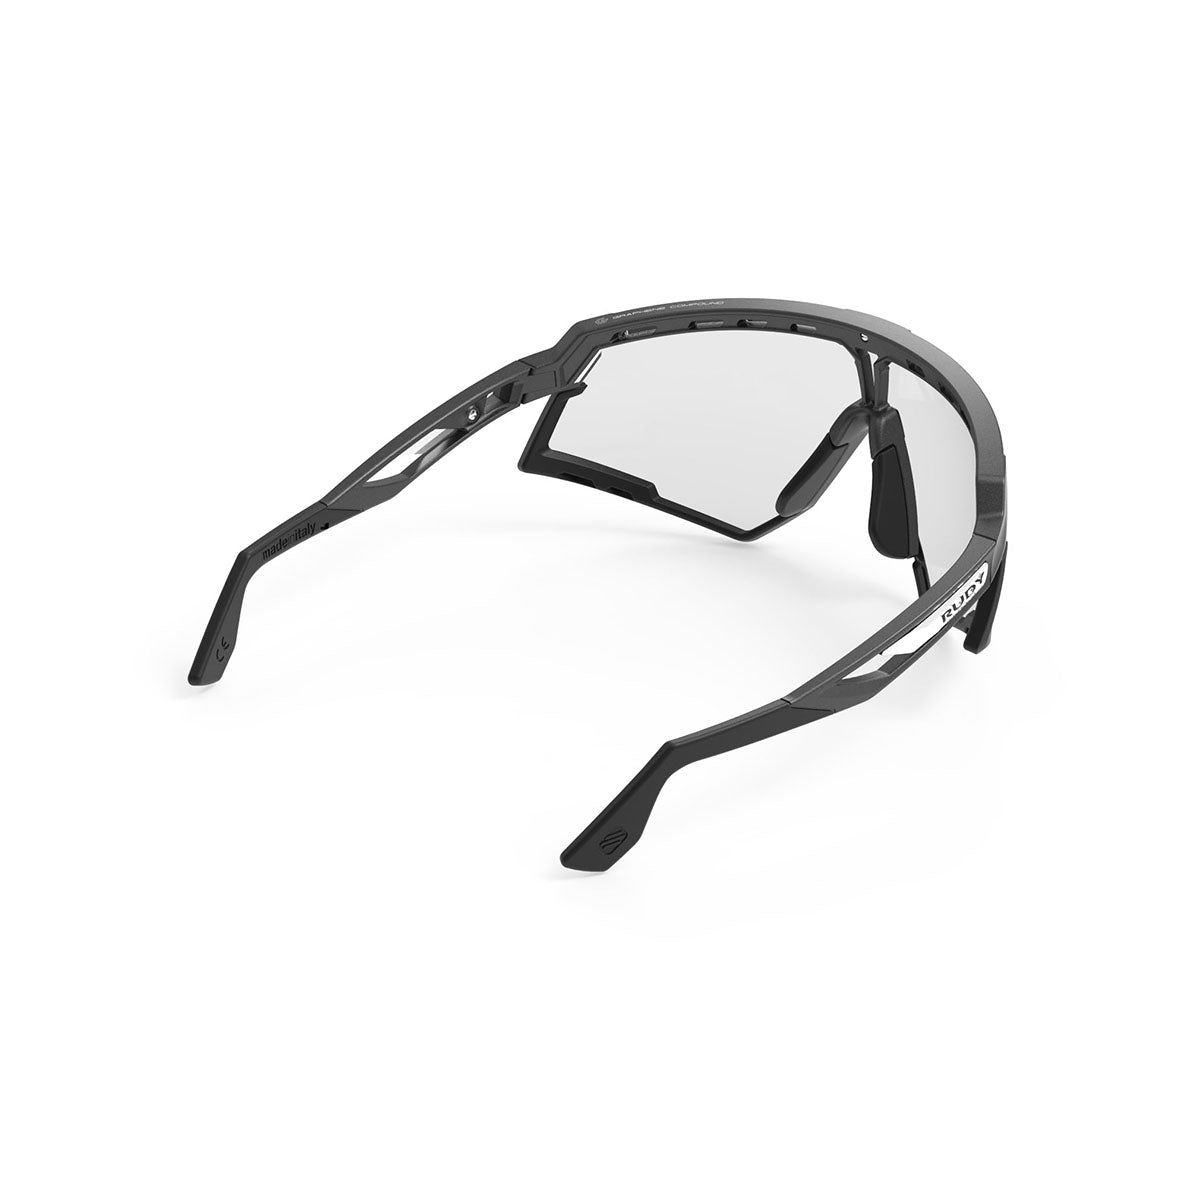 Rudy Project - Defender - frame color: Pyombo Matte - lens color: ImpactX-2 Photochromic Clear to Black - Bumper Color: Black - photo angle: Top Back Angle Variant Hover Image